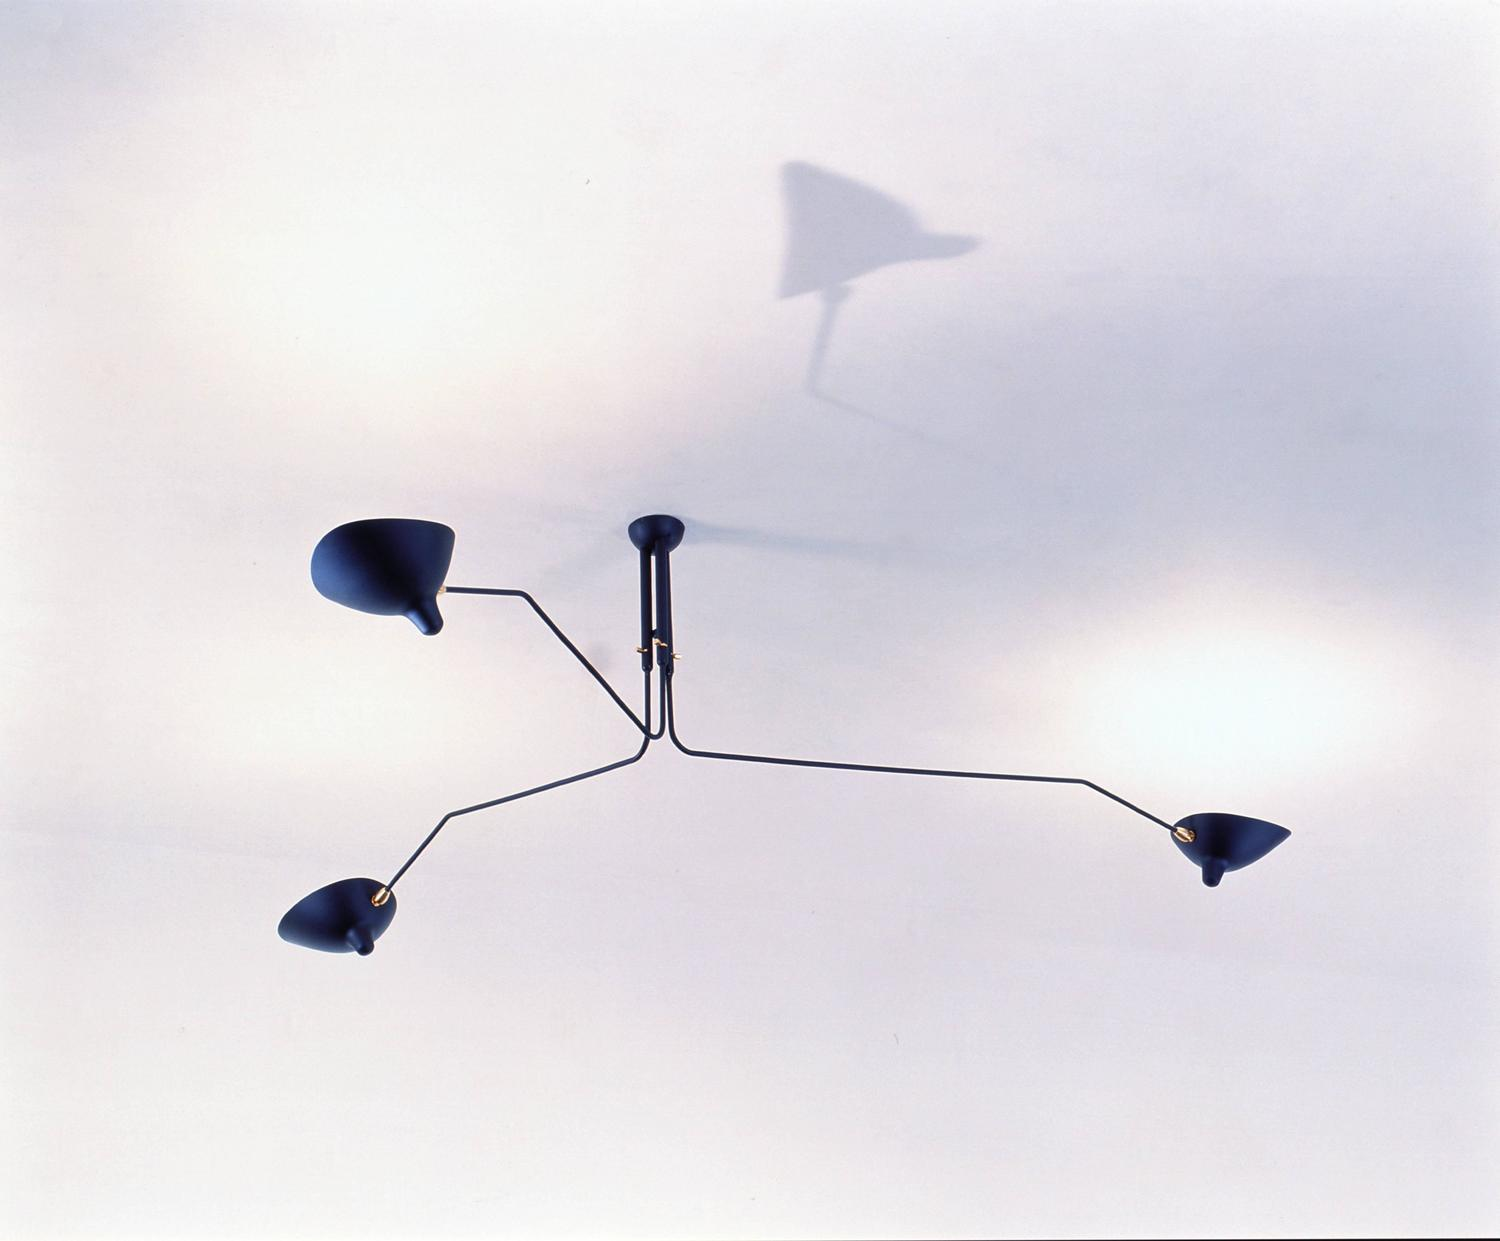 Ceiling Lamp Three Rotating Arms By Serge Mouille At 1stdibs: serge mouille three arm floor lamp